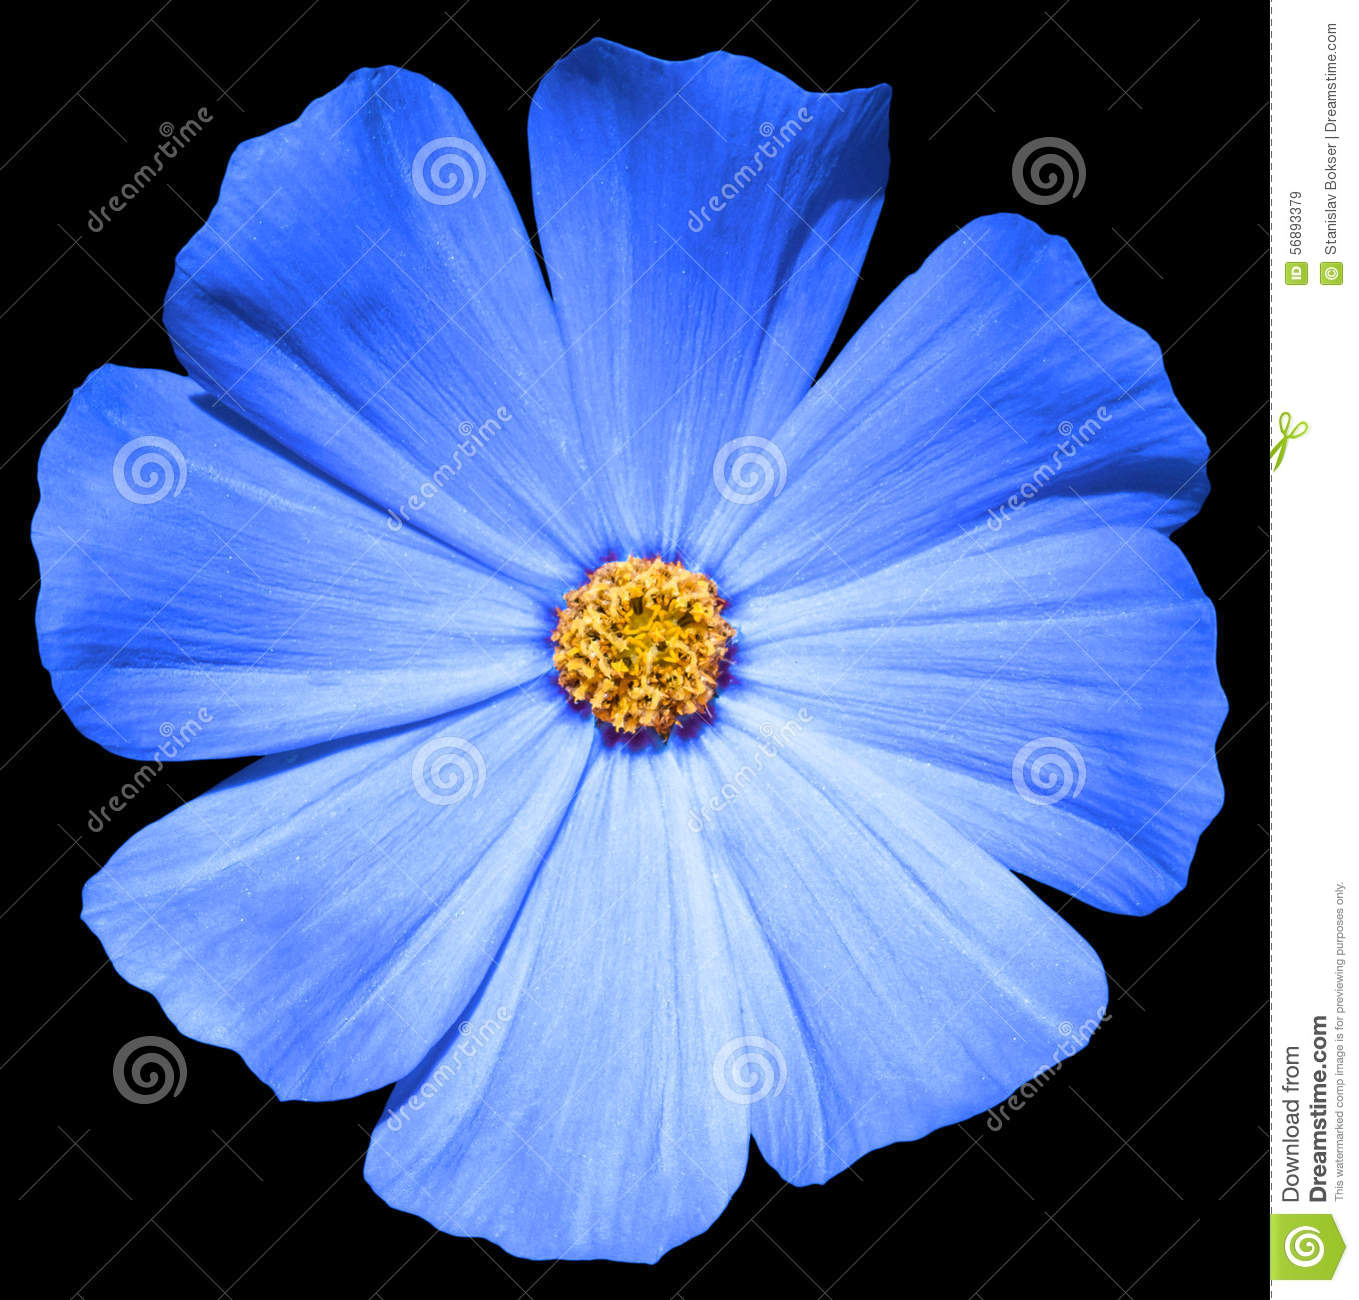 Blue flower Primula isolated